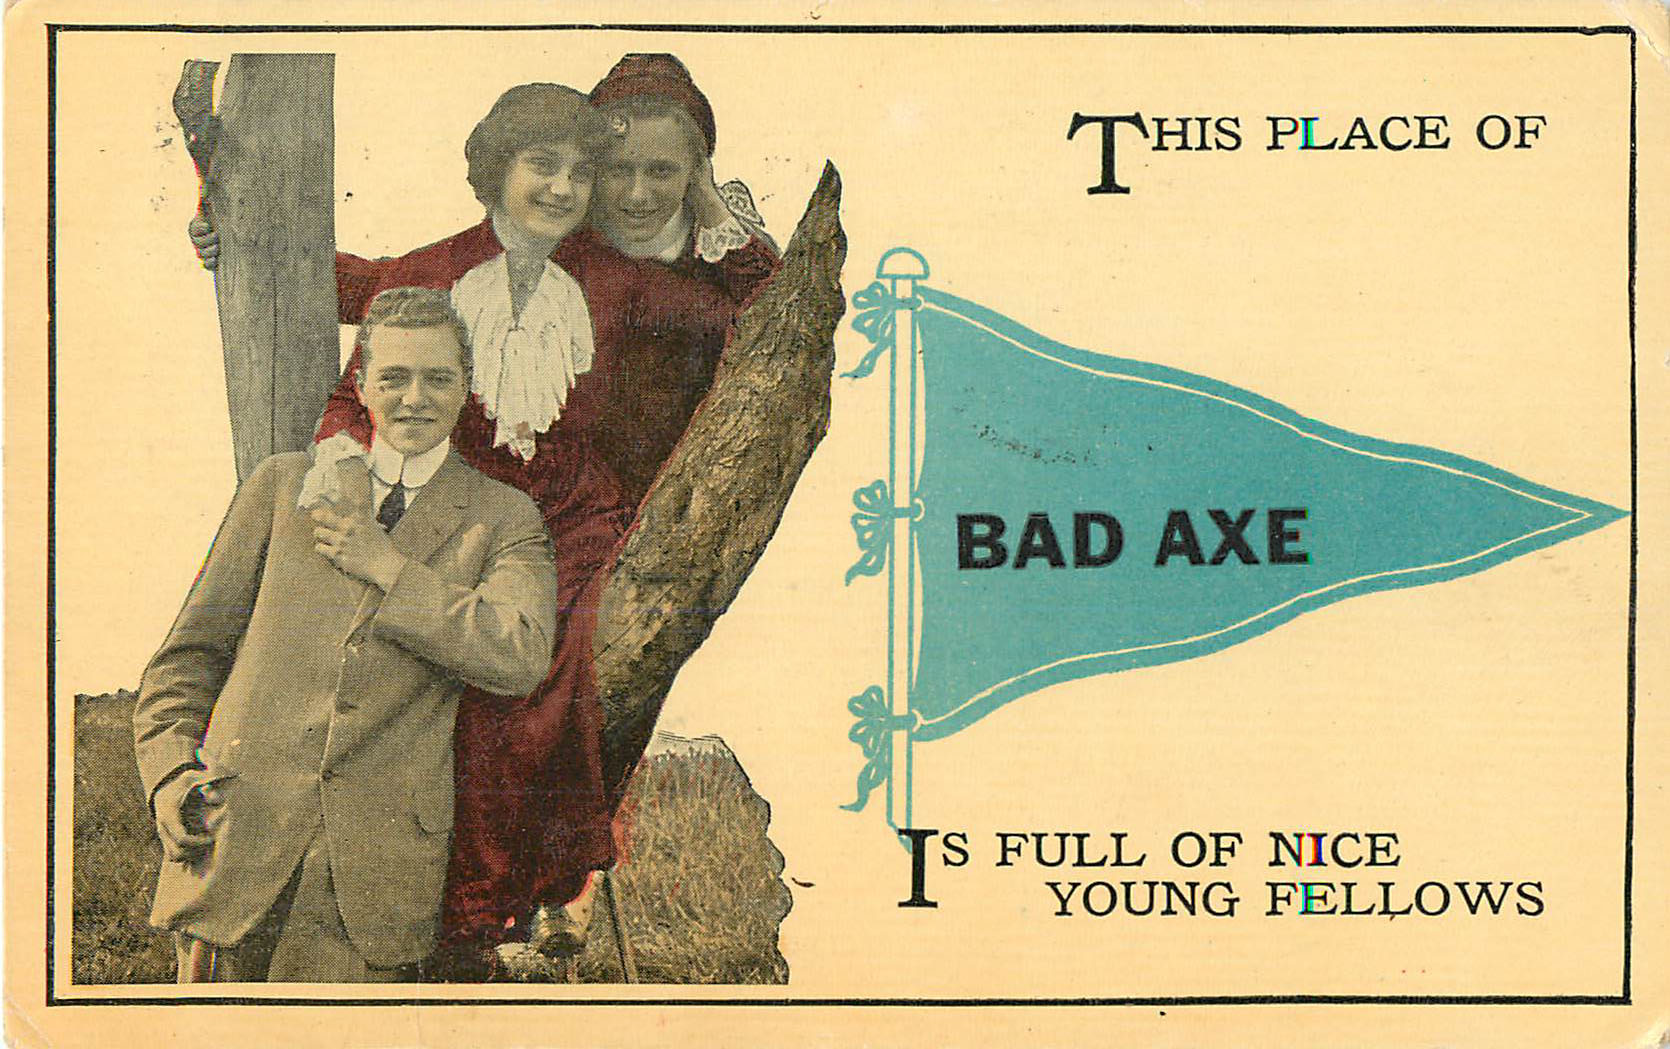 This place of Bad Axe - Pennant Postcard